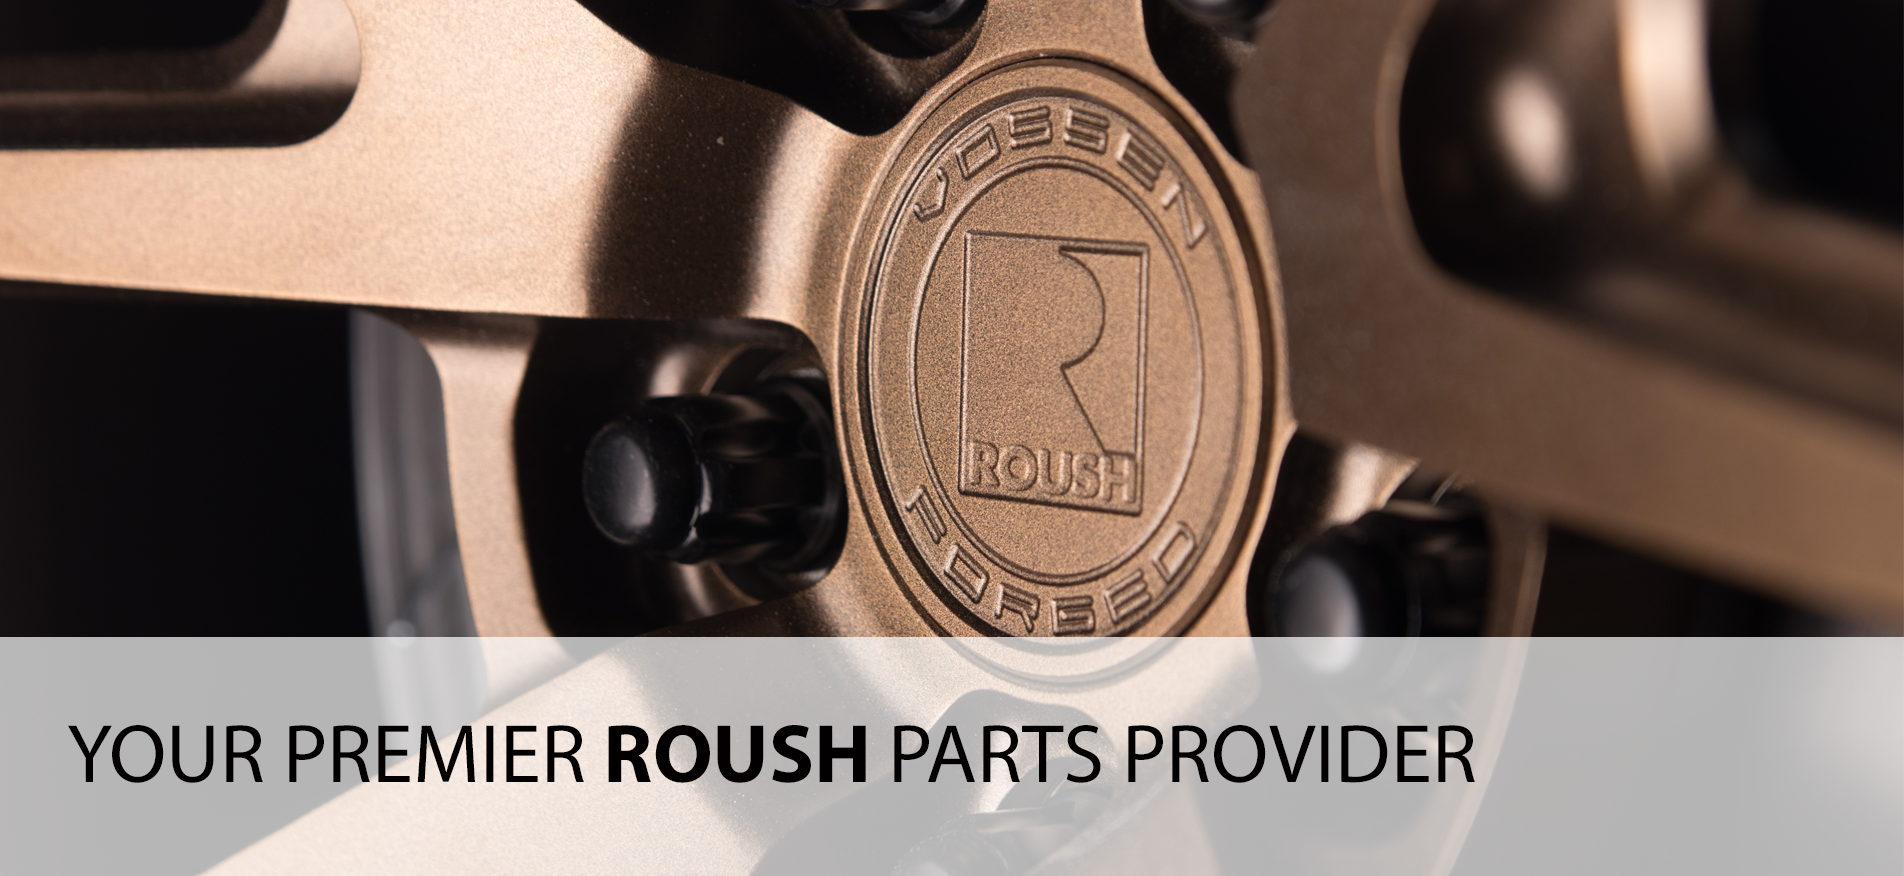 order ROUSH car parts kits alberta canada